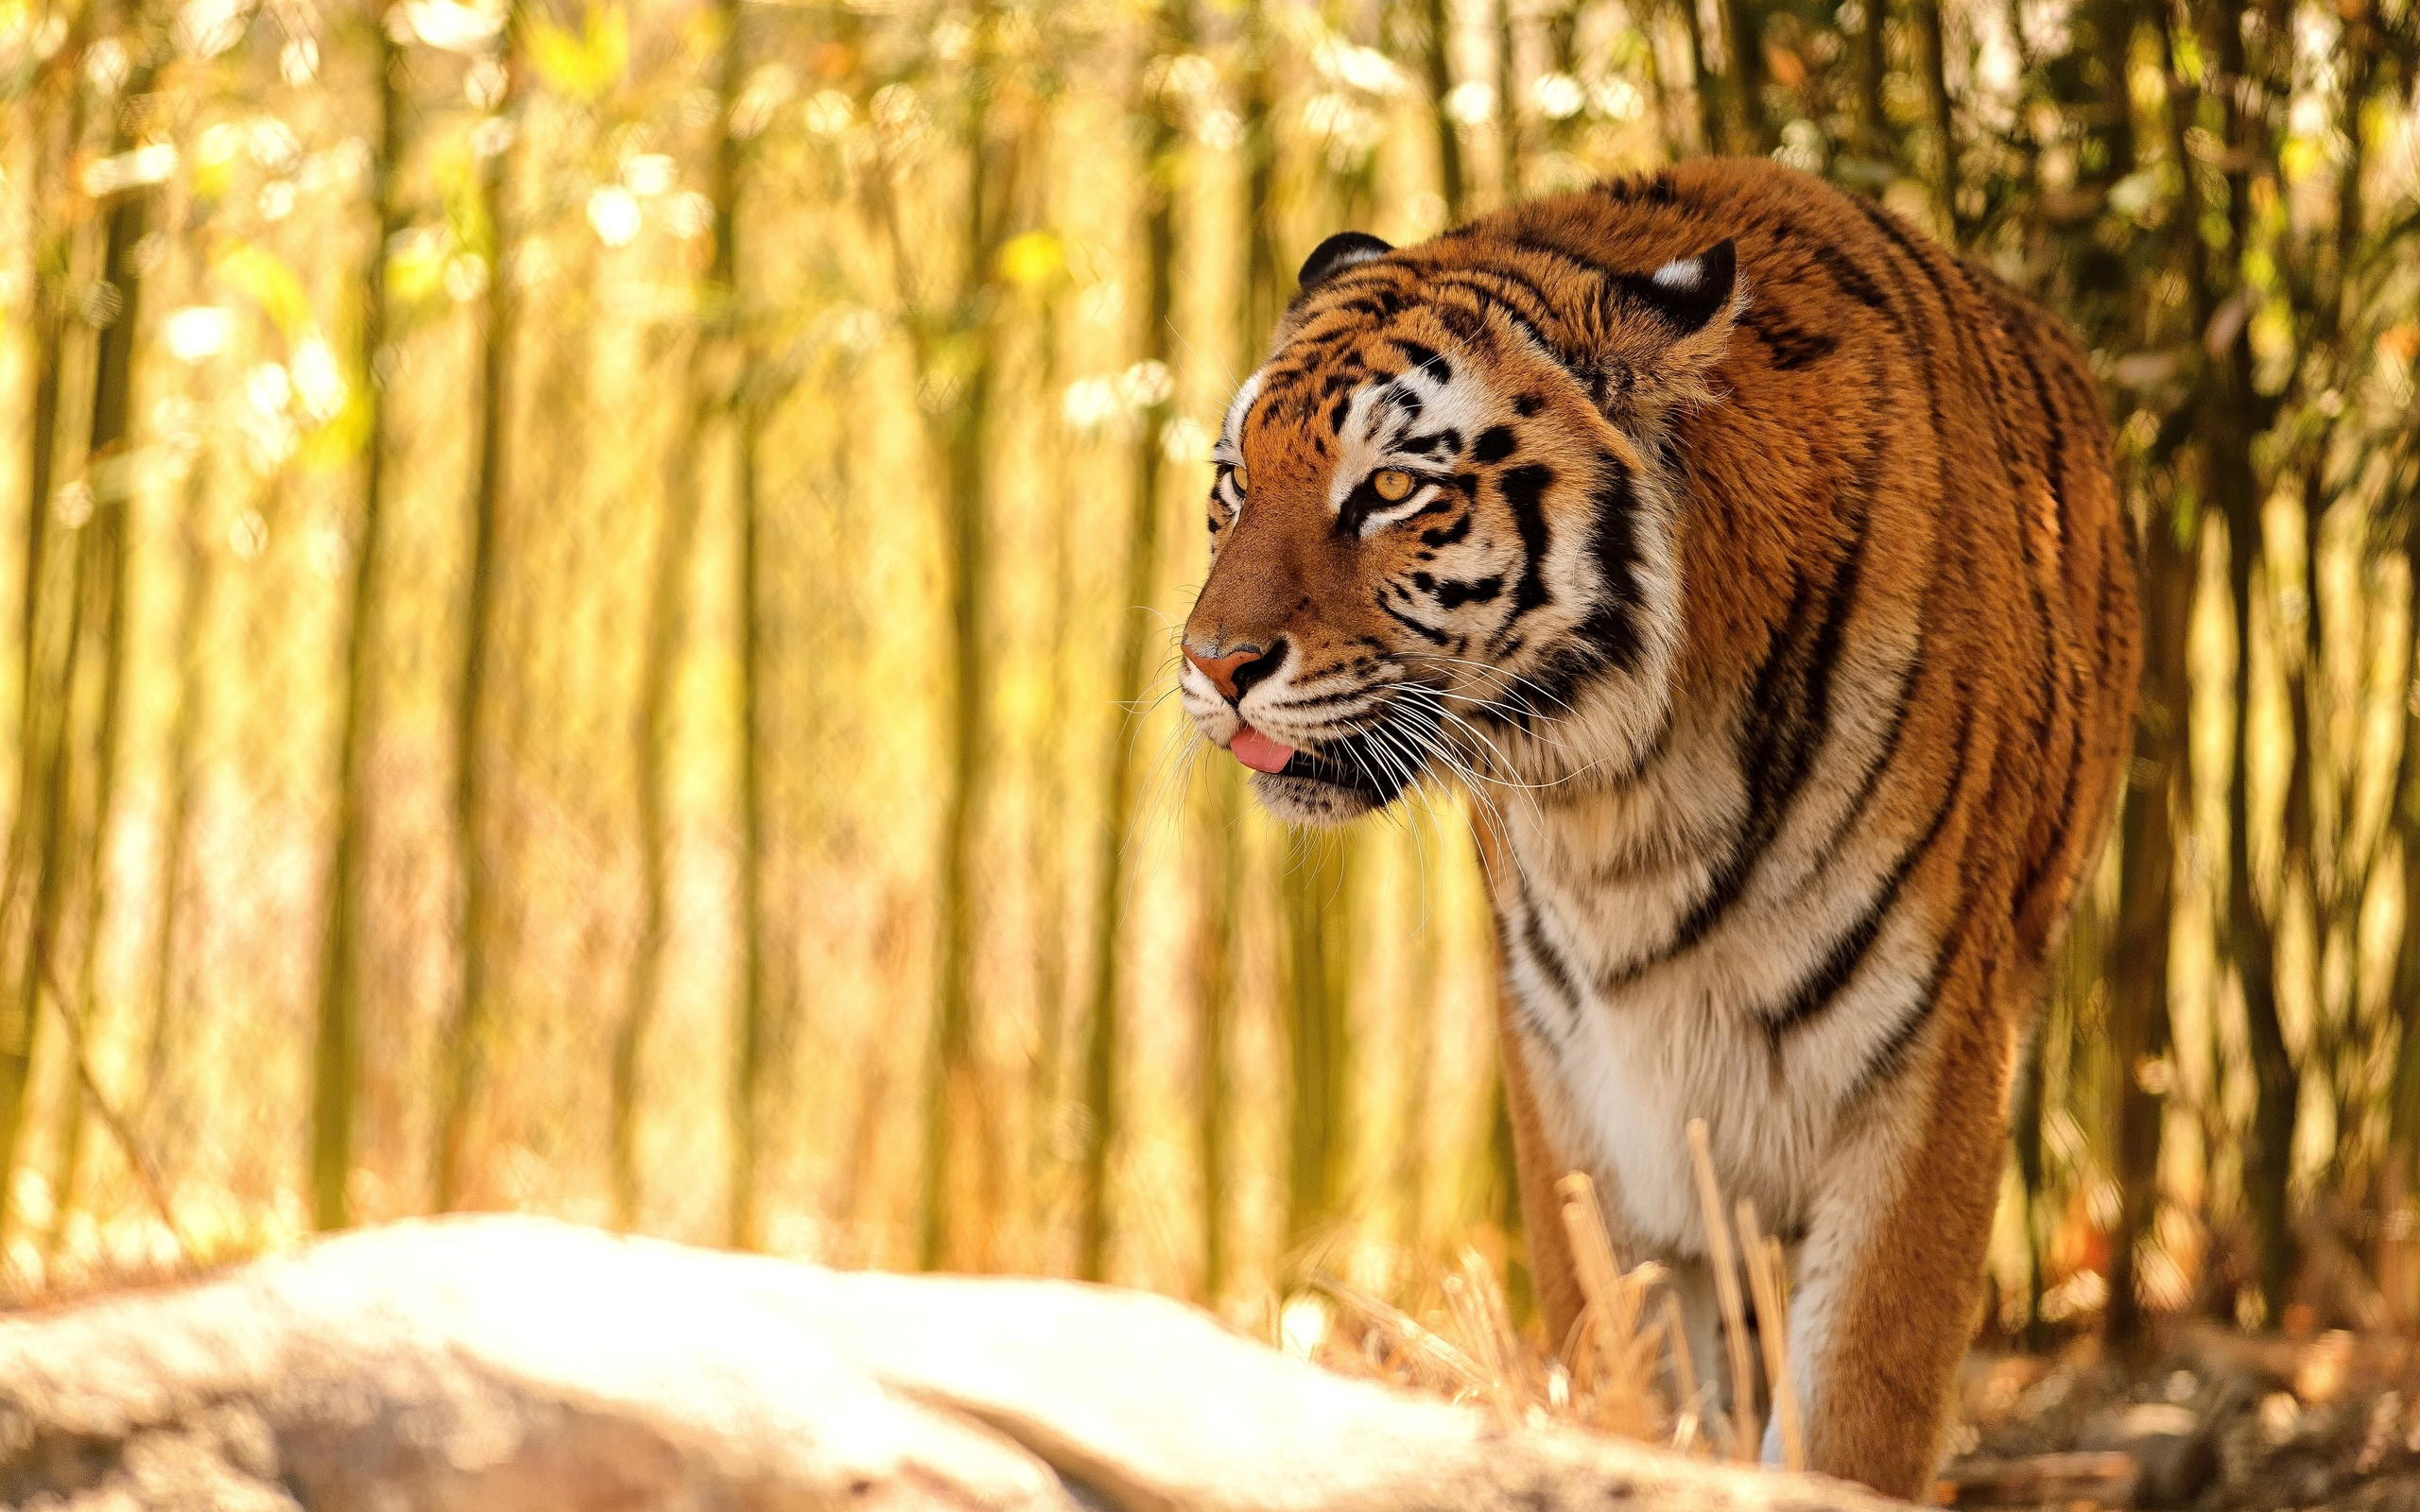 Cool 3d Wallpapers For Walls Tiger In The Corner Wallpapers 2560x1600 1587868